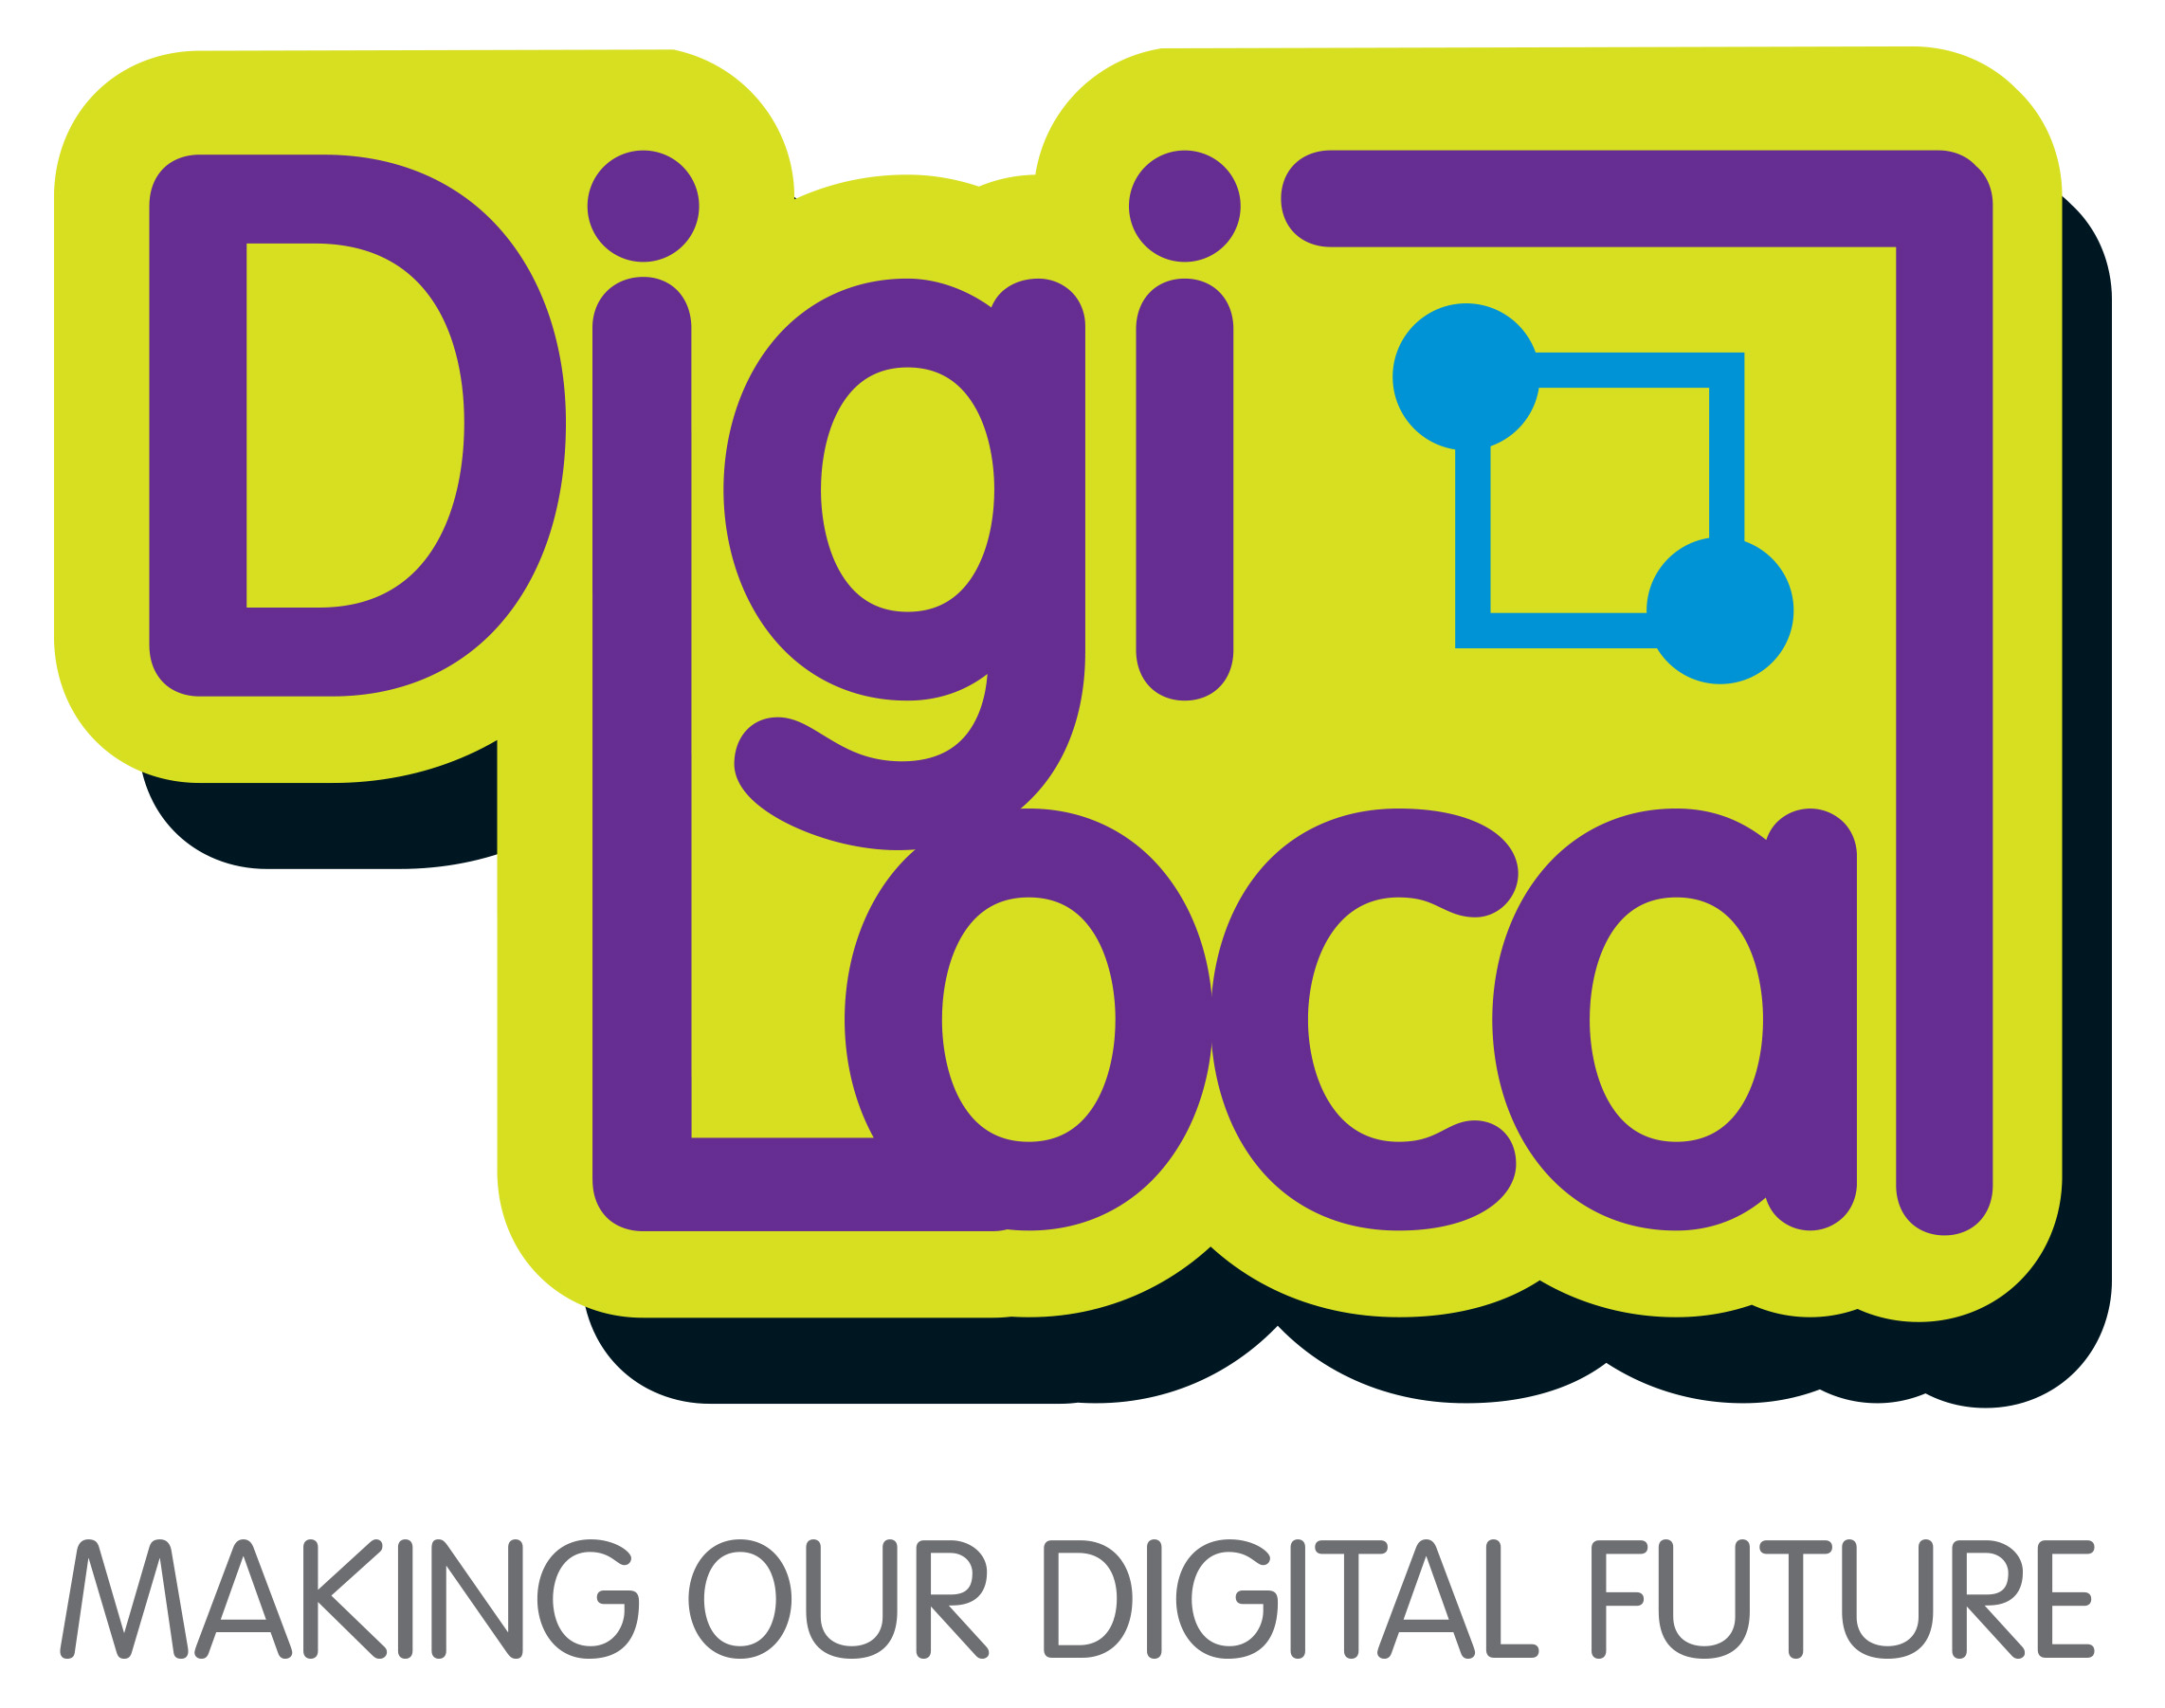 Teachers – refer your class to online Digilocal coding sessions